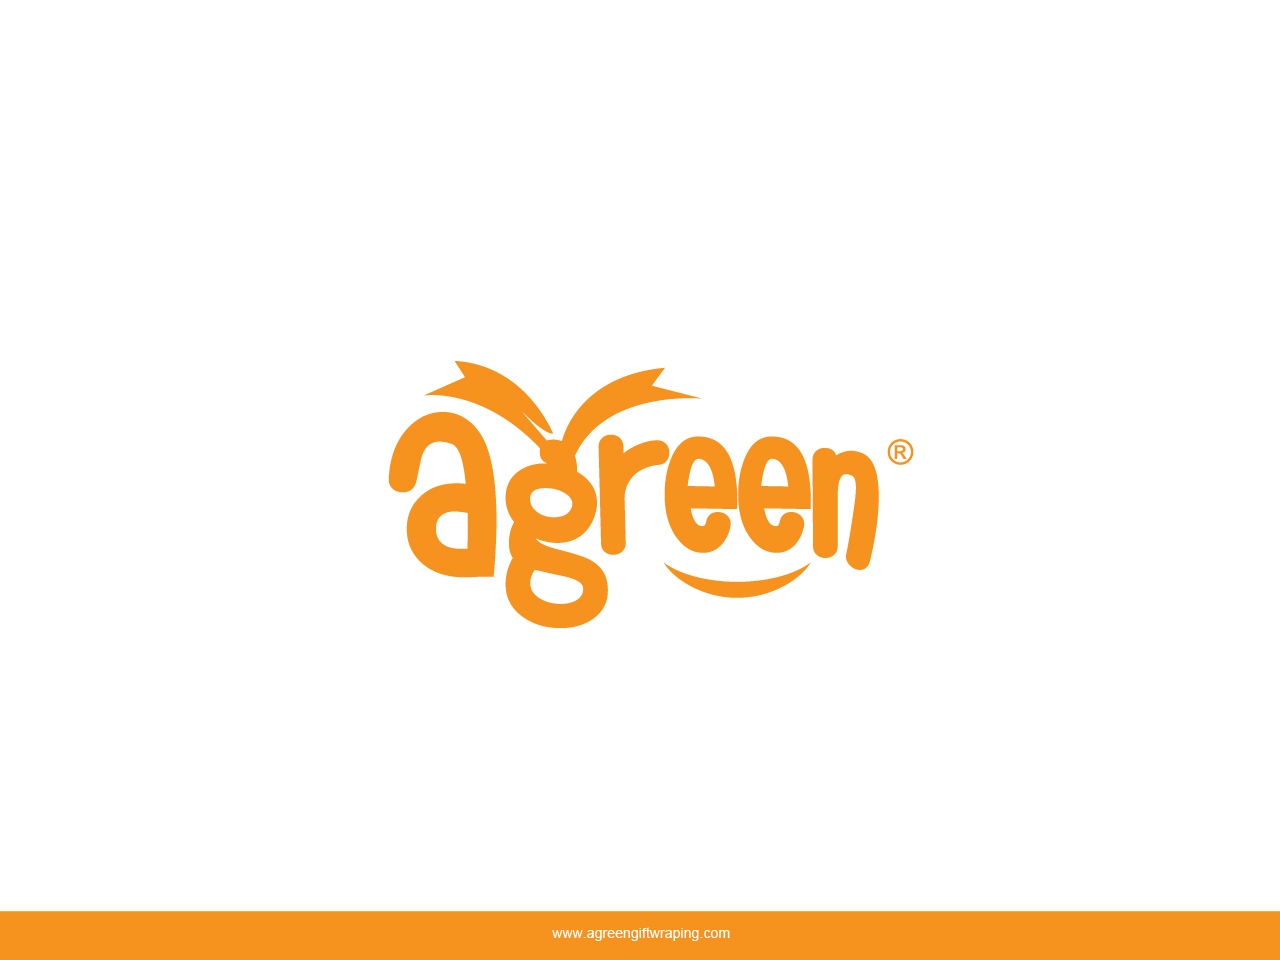 Logo Design by jpbituin - Entry No. 96 in the Logo Design Contest Inspiring Logo Design for Agreen.